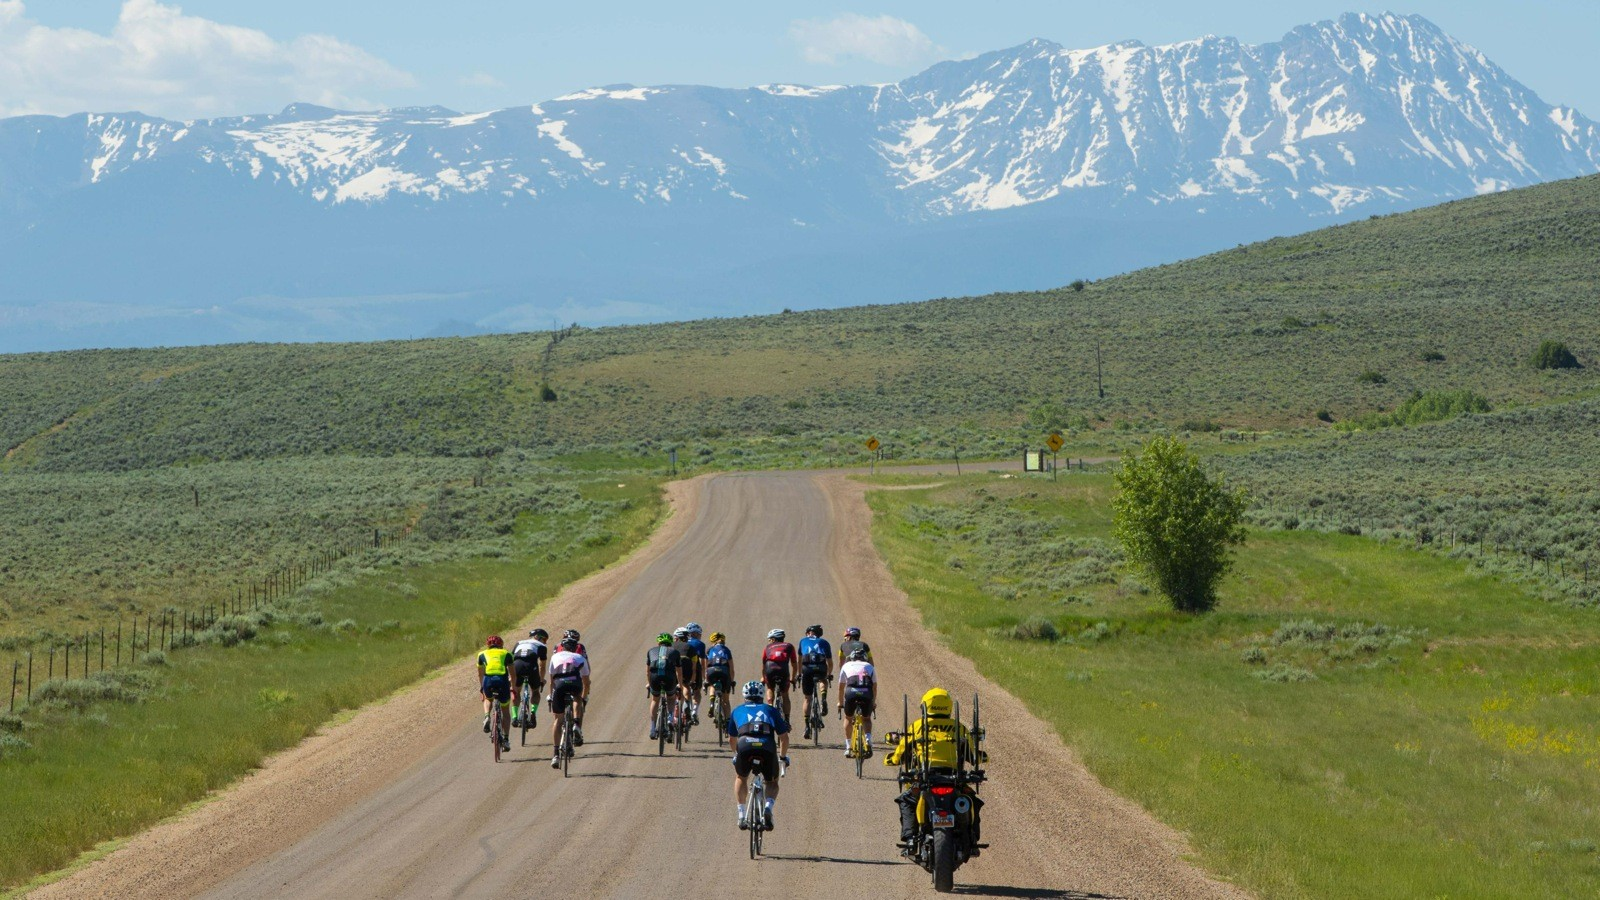 Some of the dirt roads we rode were smoother than asphalt, thanks to a treatment of magnesium chloride